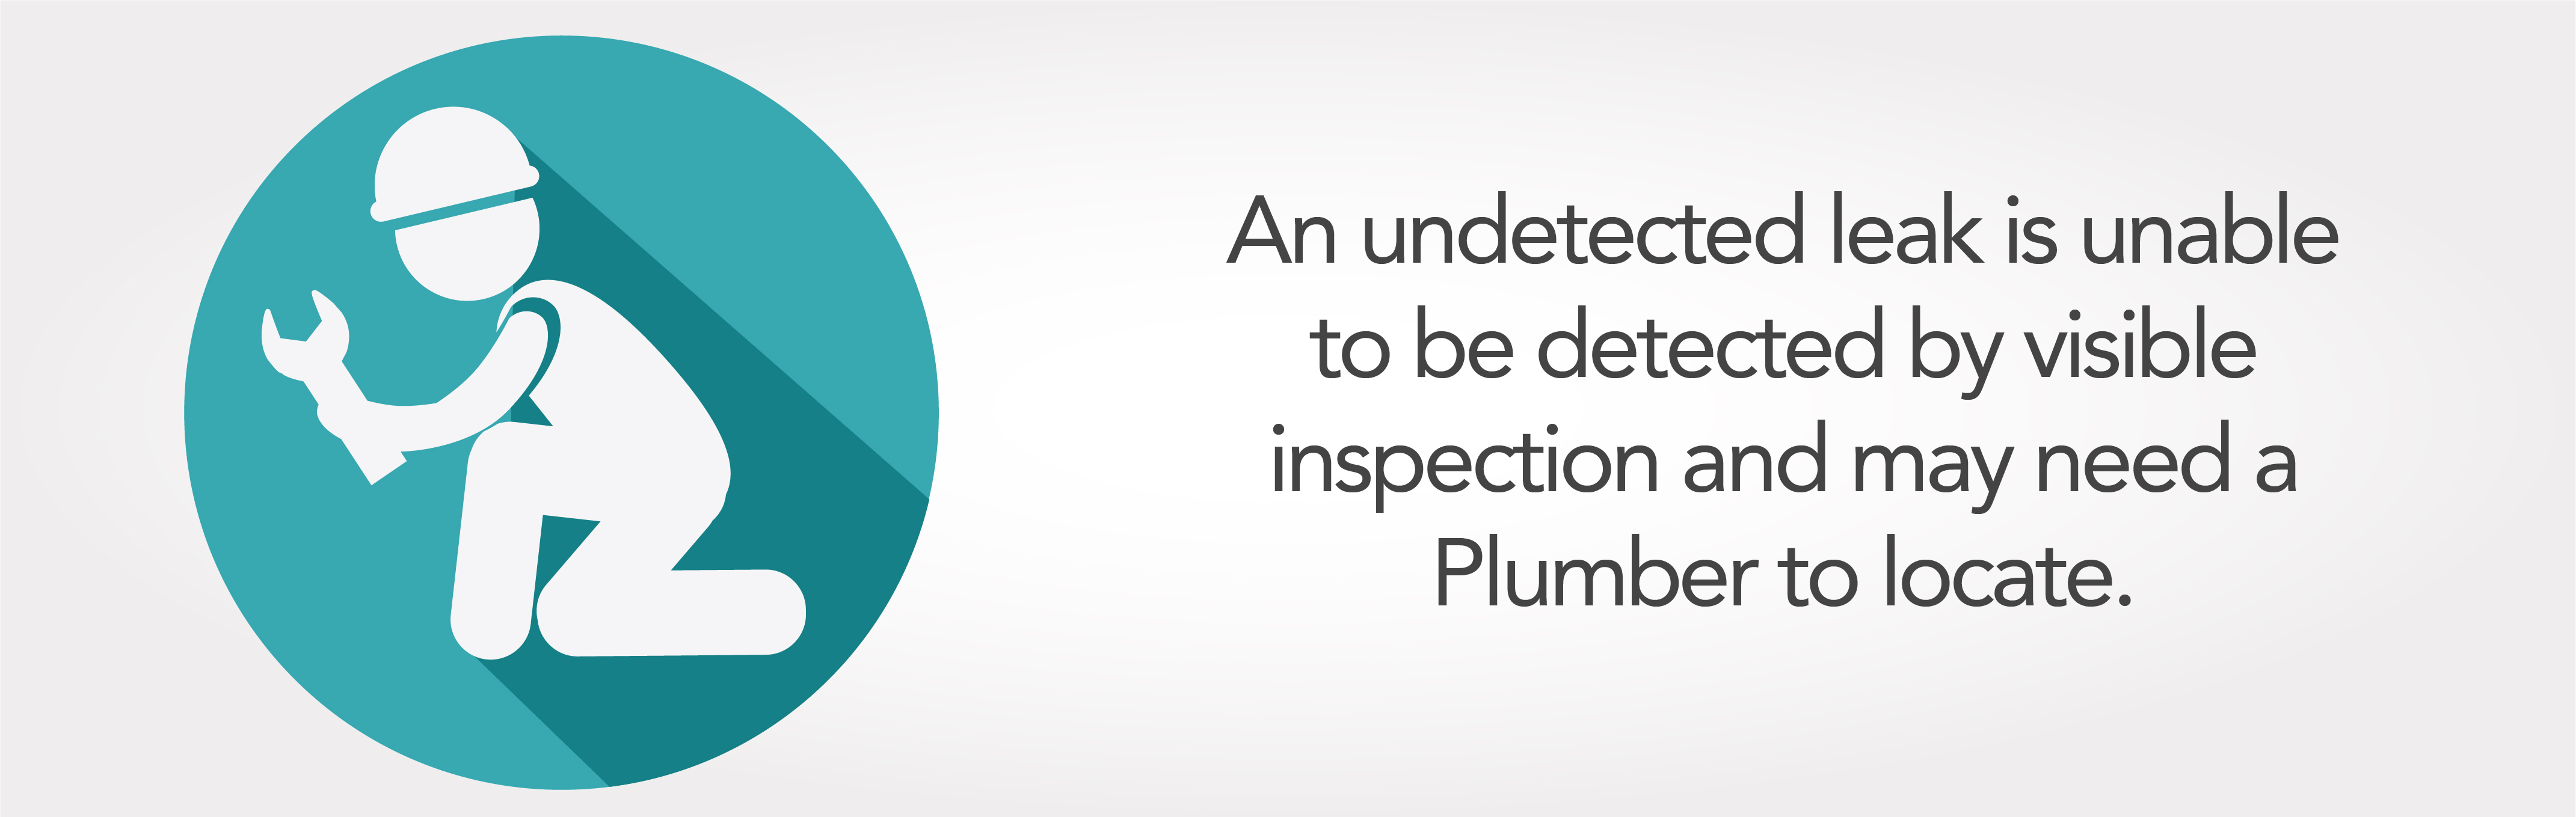 An undetected leak is unable to be detected by visible inspection and may need a Plumber to locate